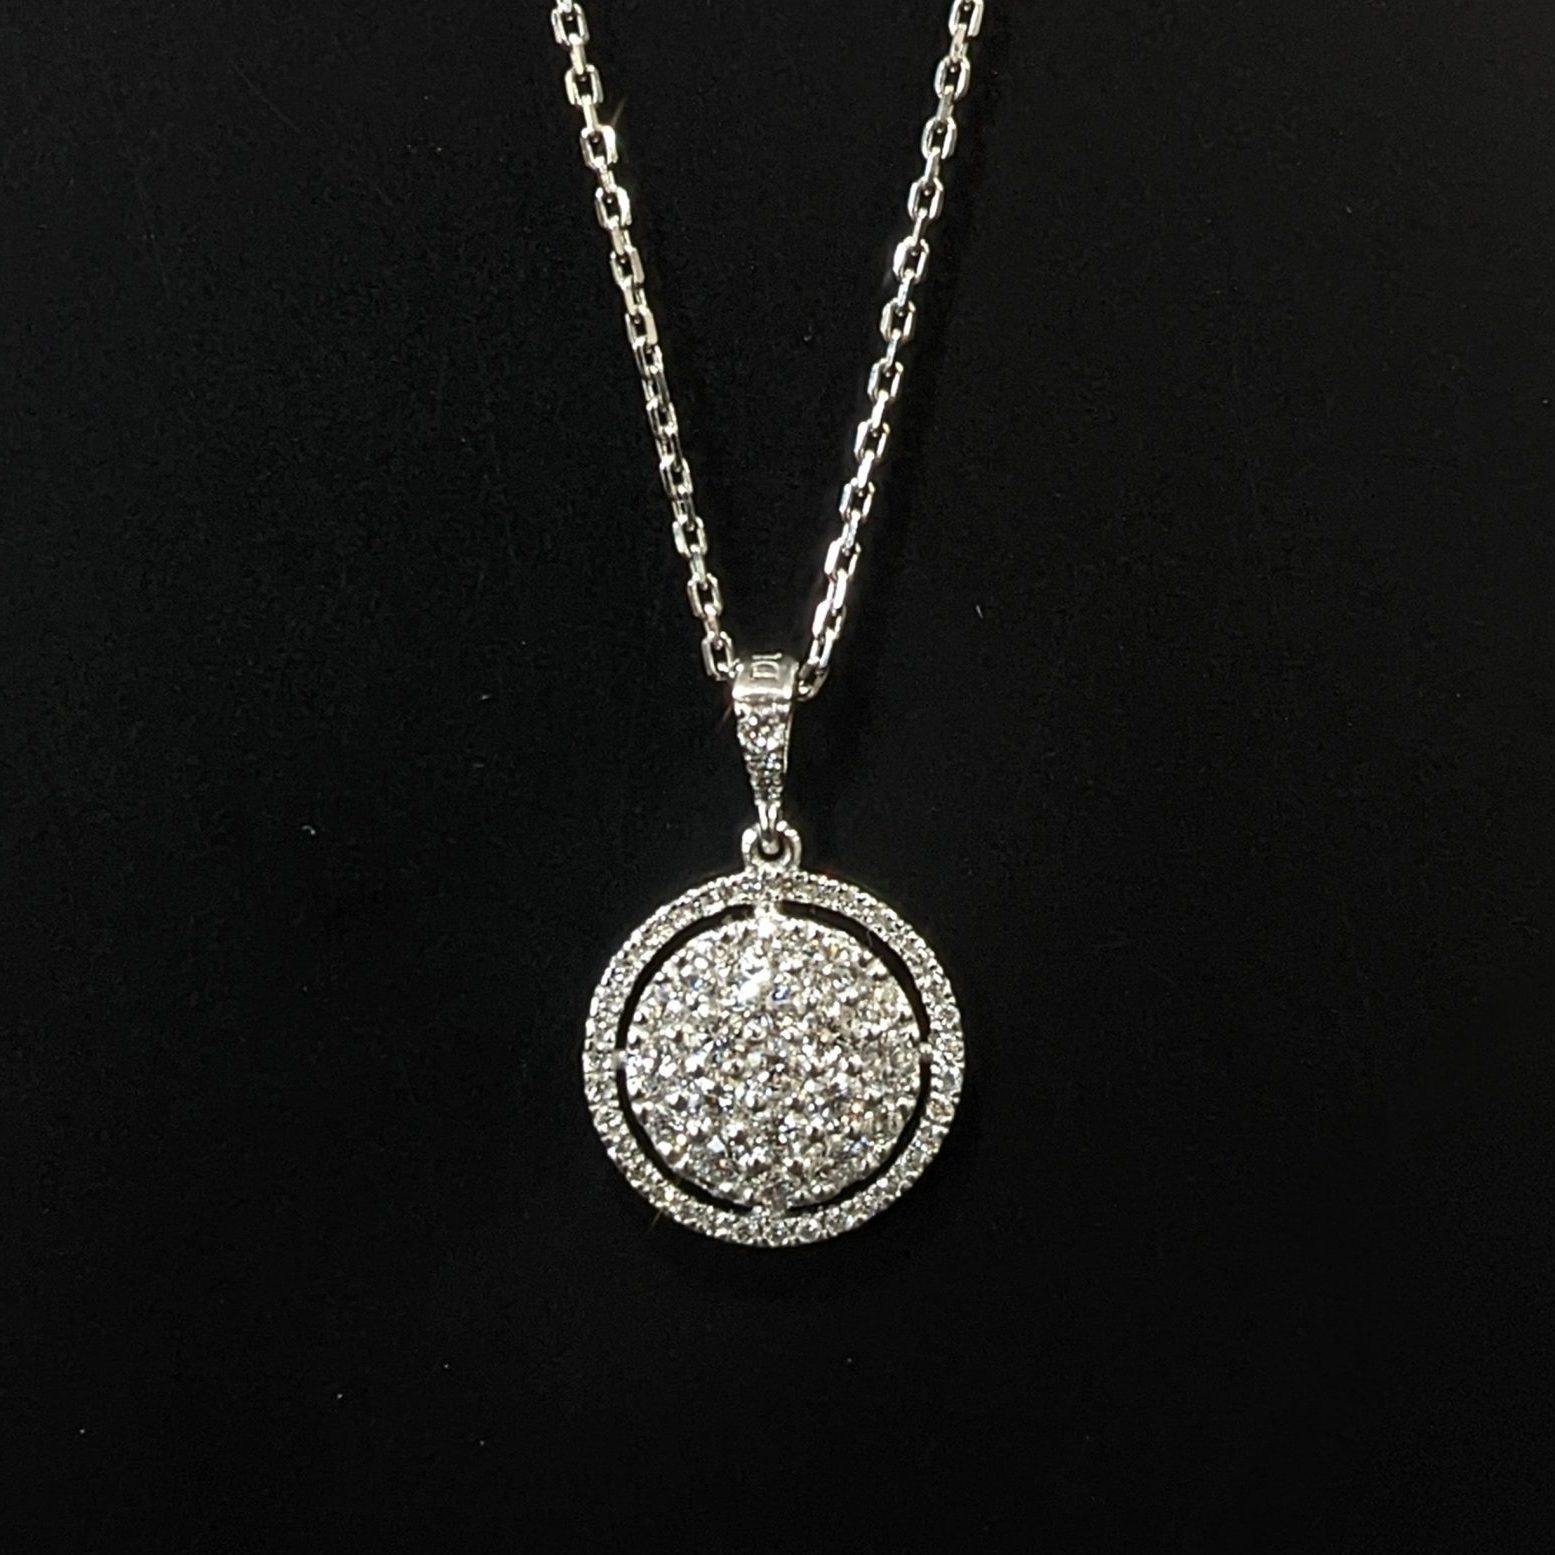 diamond ladies necklace with a diamond halo handmade in 18ct white gold